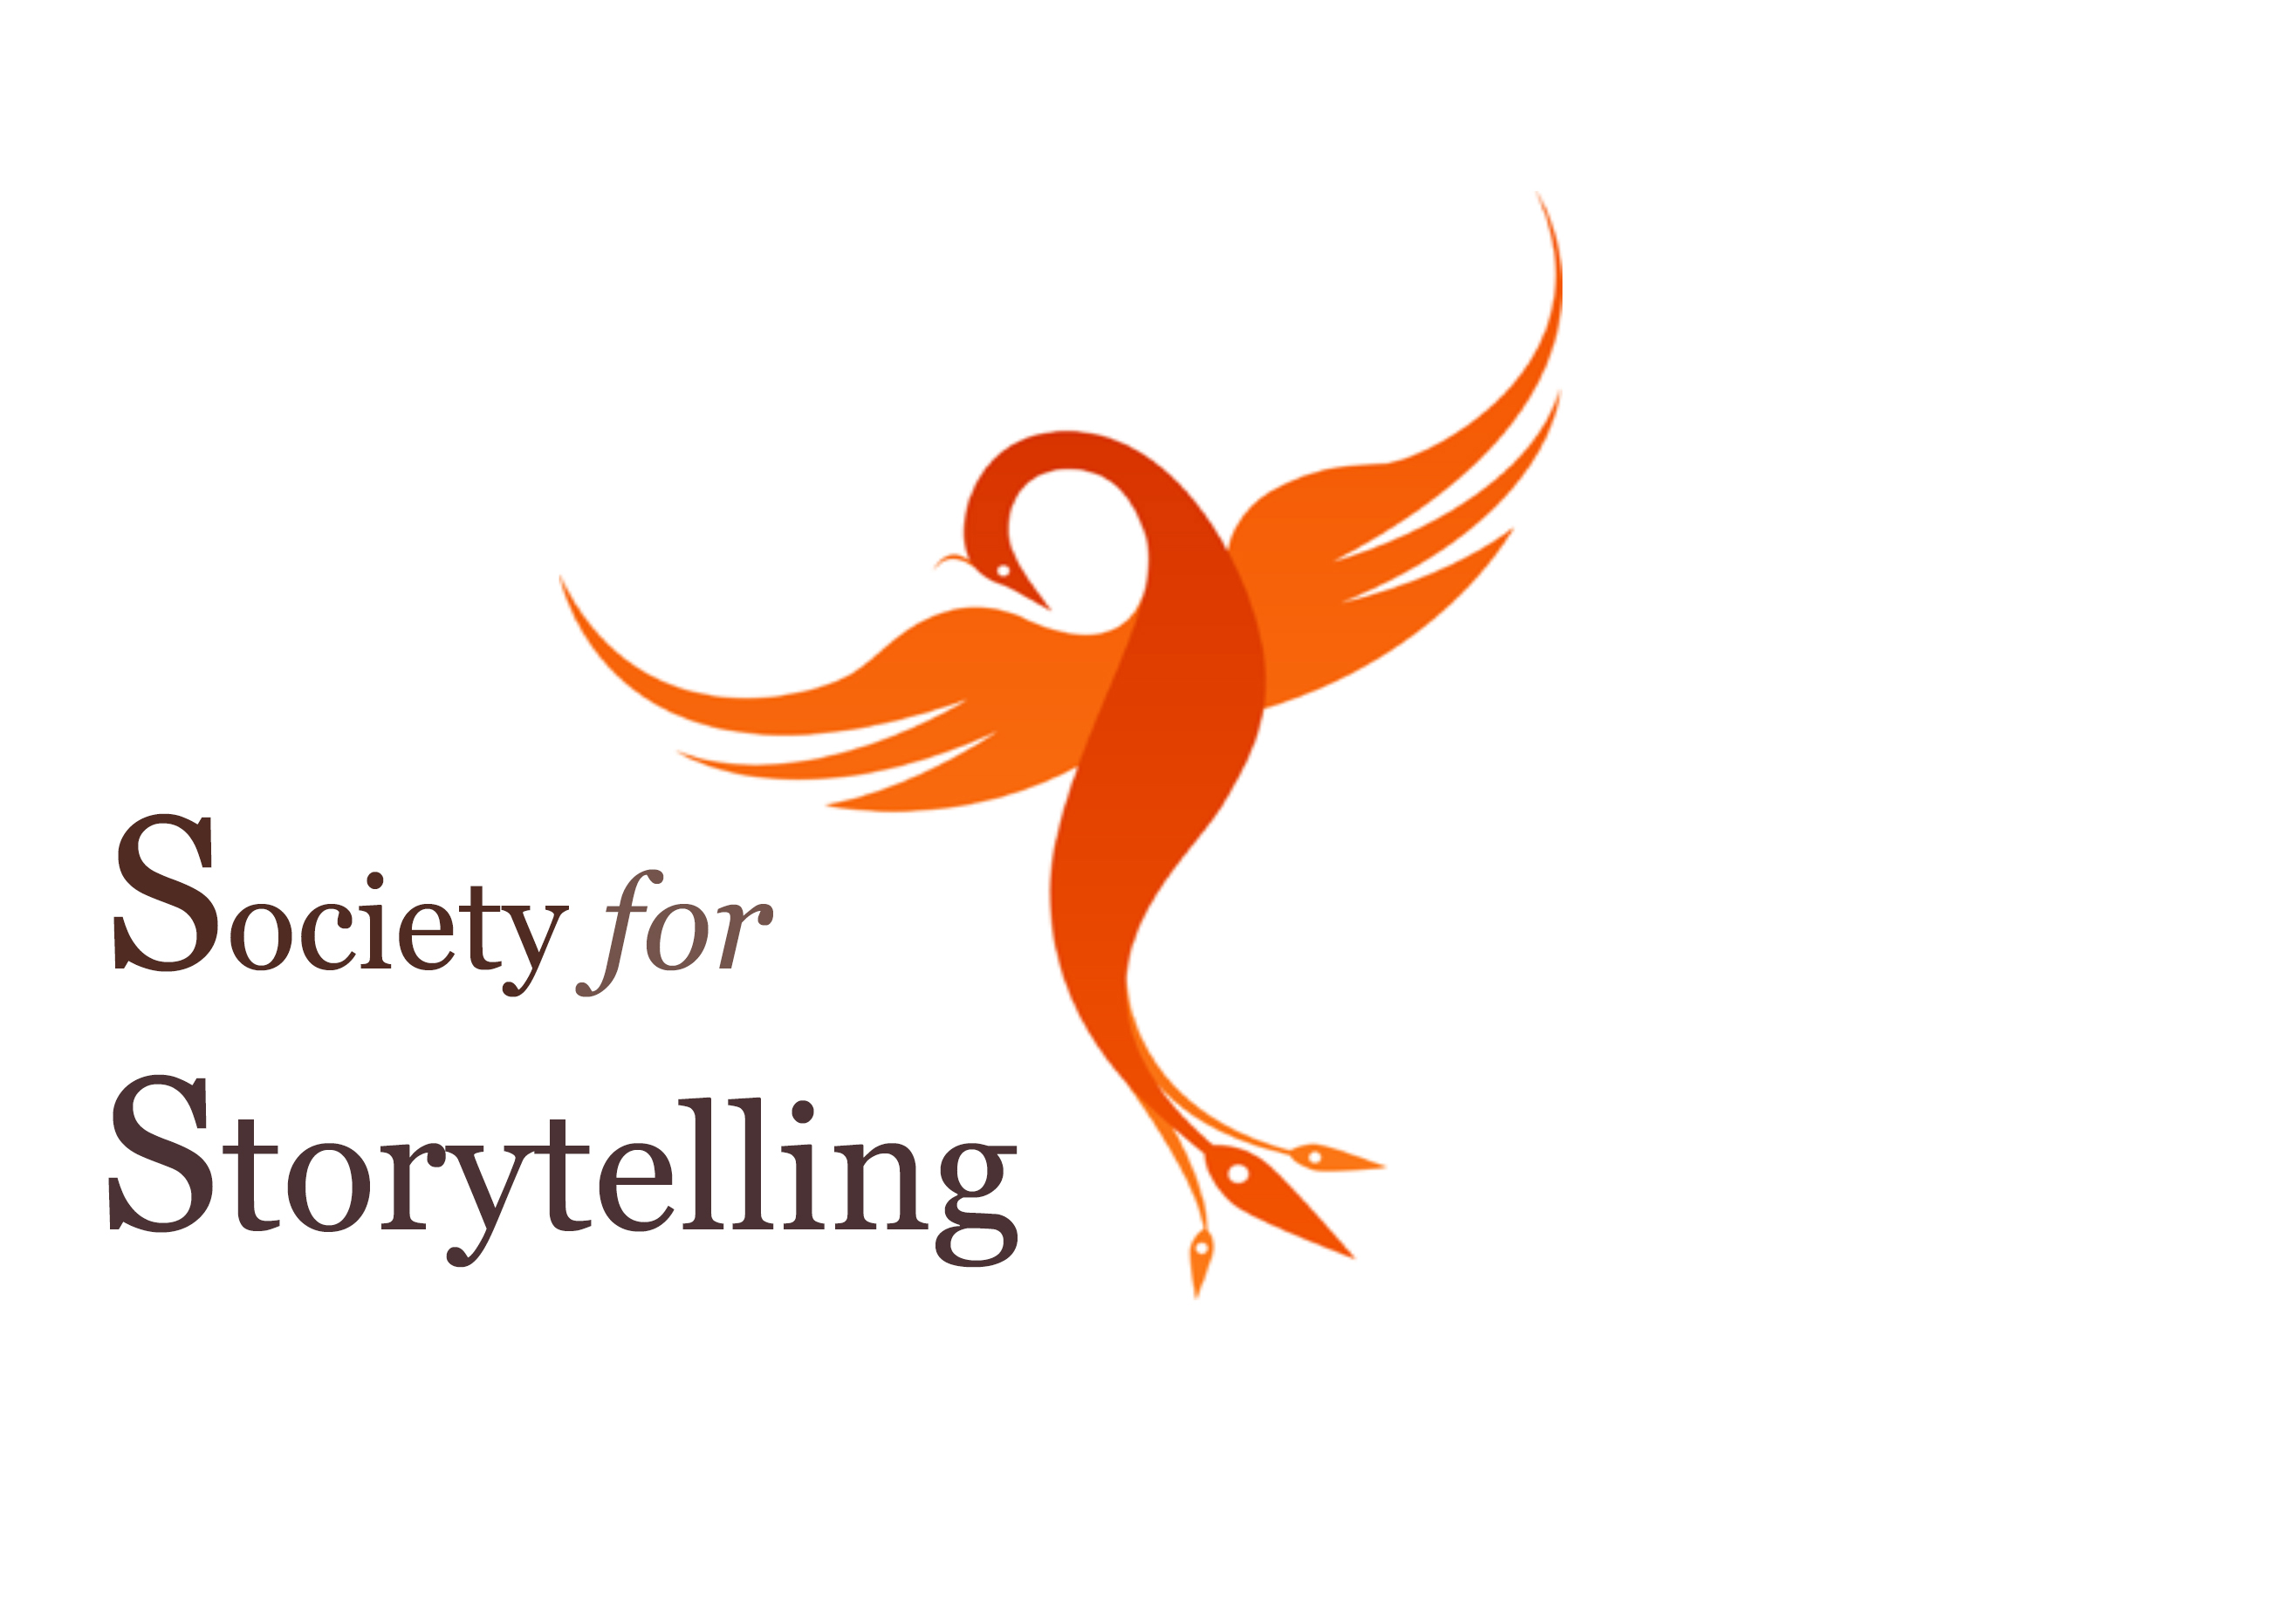 Society for storytelling